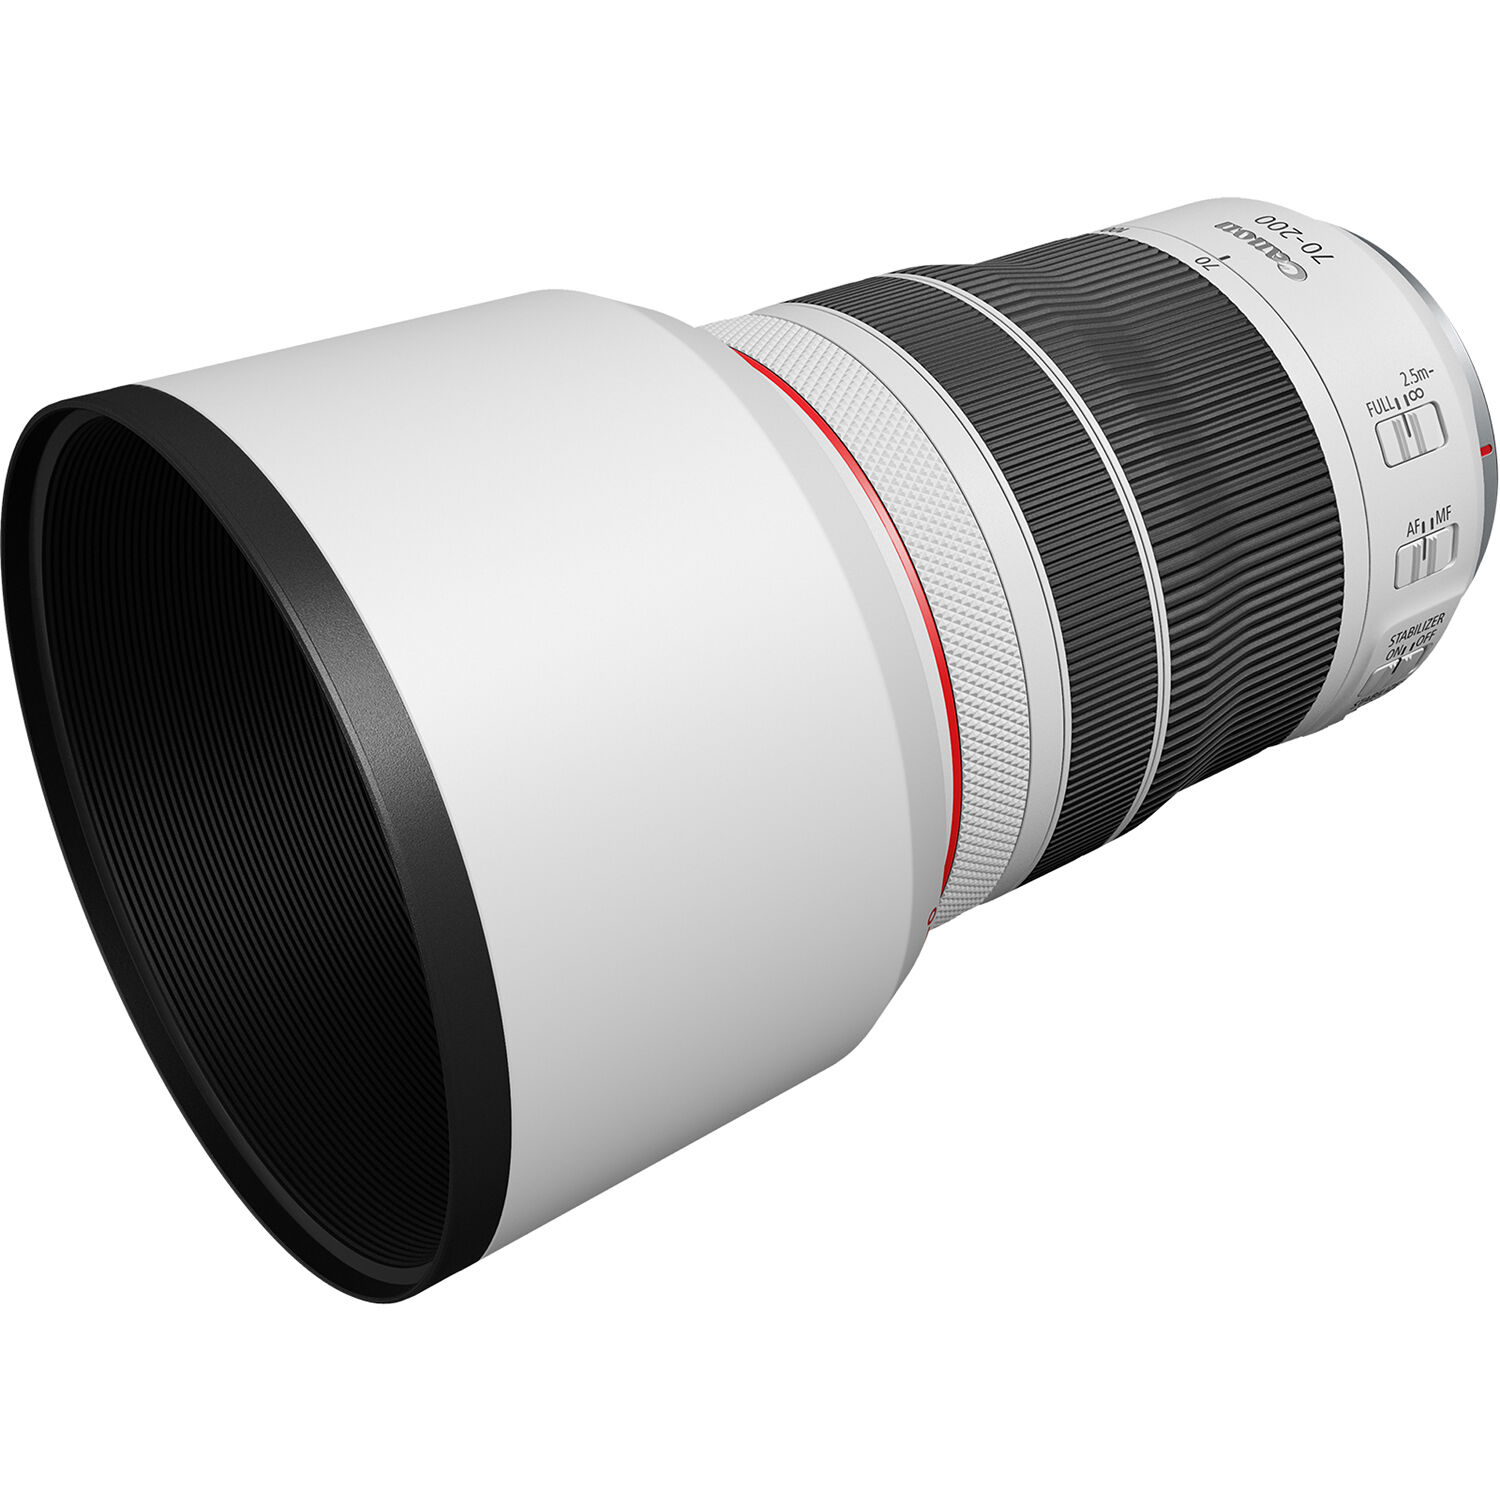 new lens with lens hood attached